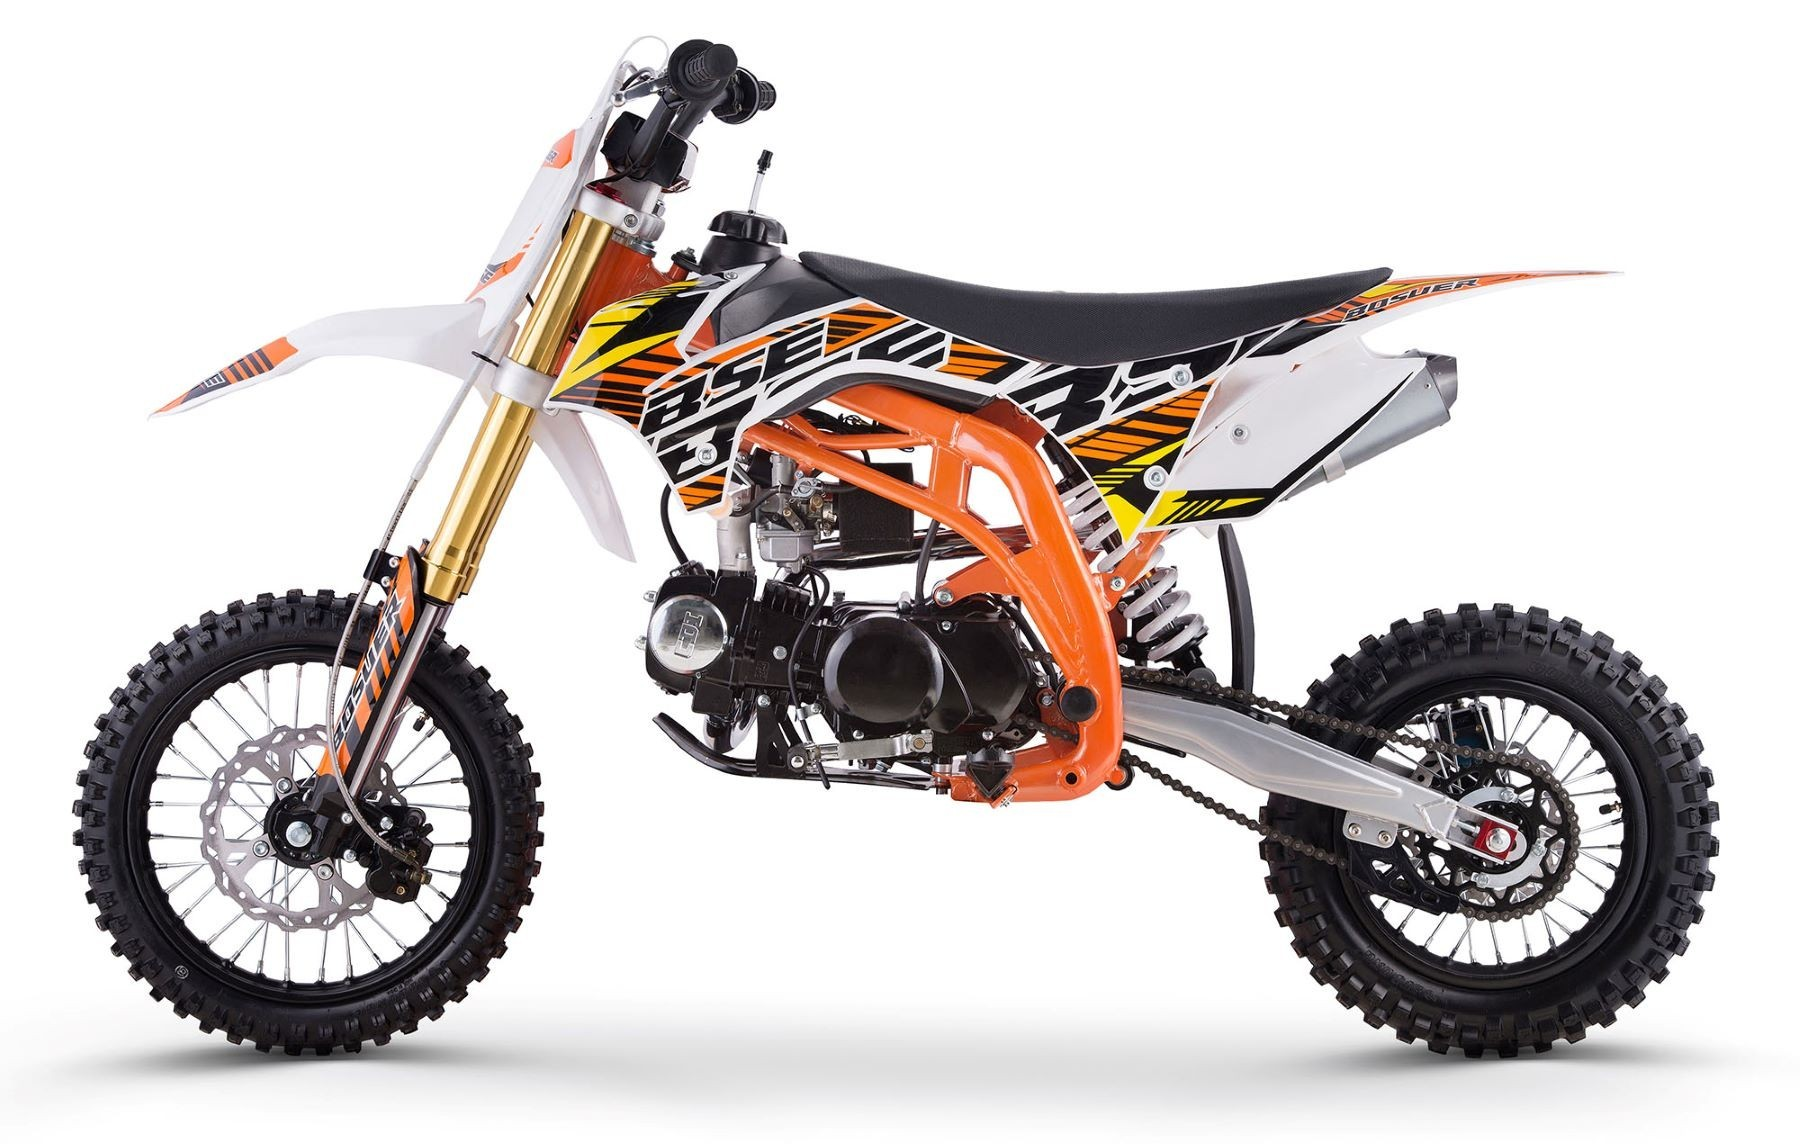 CHINESES MOTOCROSS PARTS FOR BSE AND TAOTAO - VTT  LACHUTE